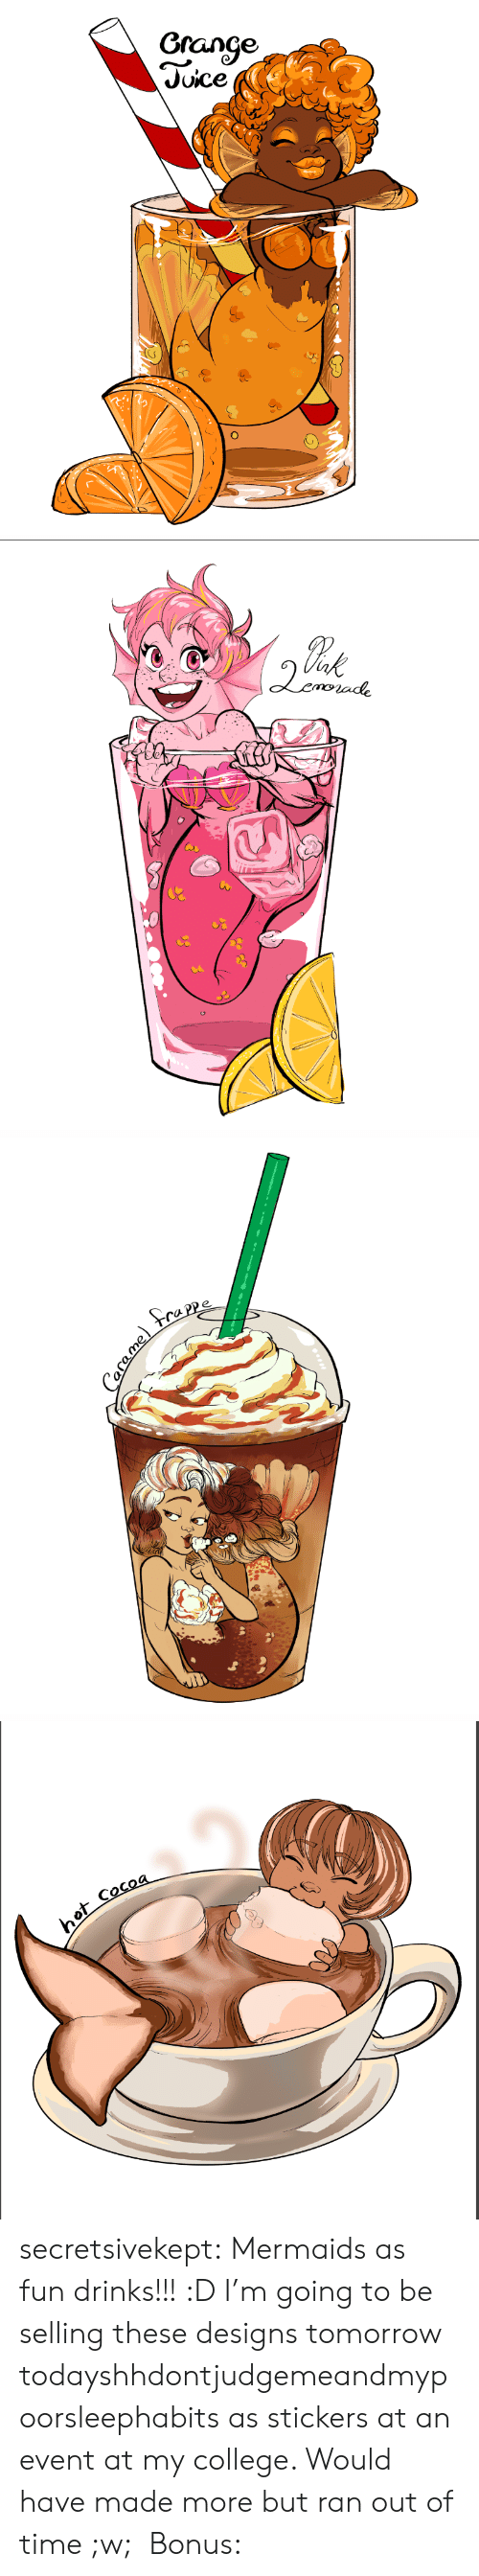 College, Juice, and Target: Grange  Juice   ot Cocoa secretsivekept: Mermaids as fun drinks!!! :D I'm going to be selling these designs tomorrow todayshhdontjudgemeandmypoorsleephabits as stickers at an event at my college. Would have made more but ran out of time ;w;  Bonus: